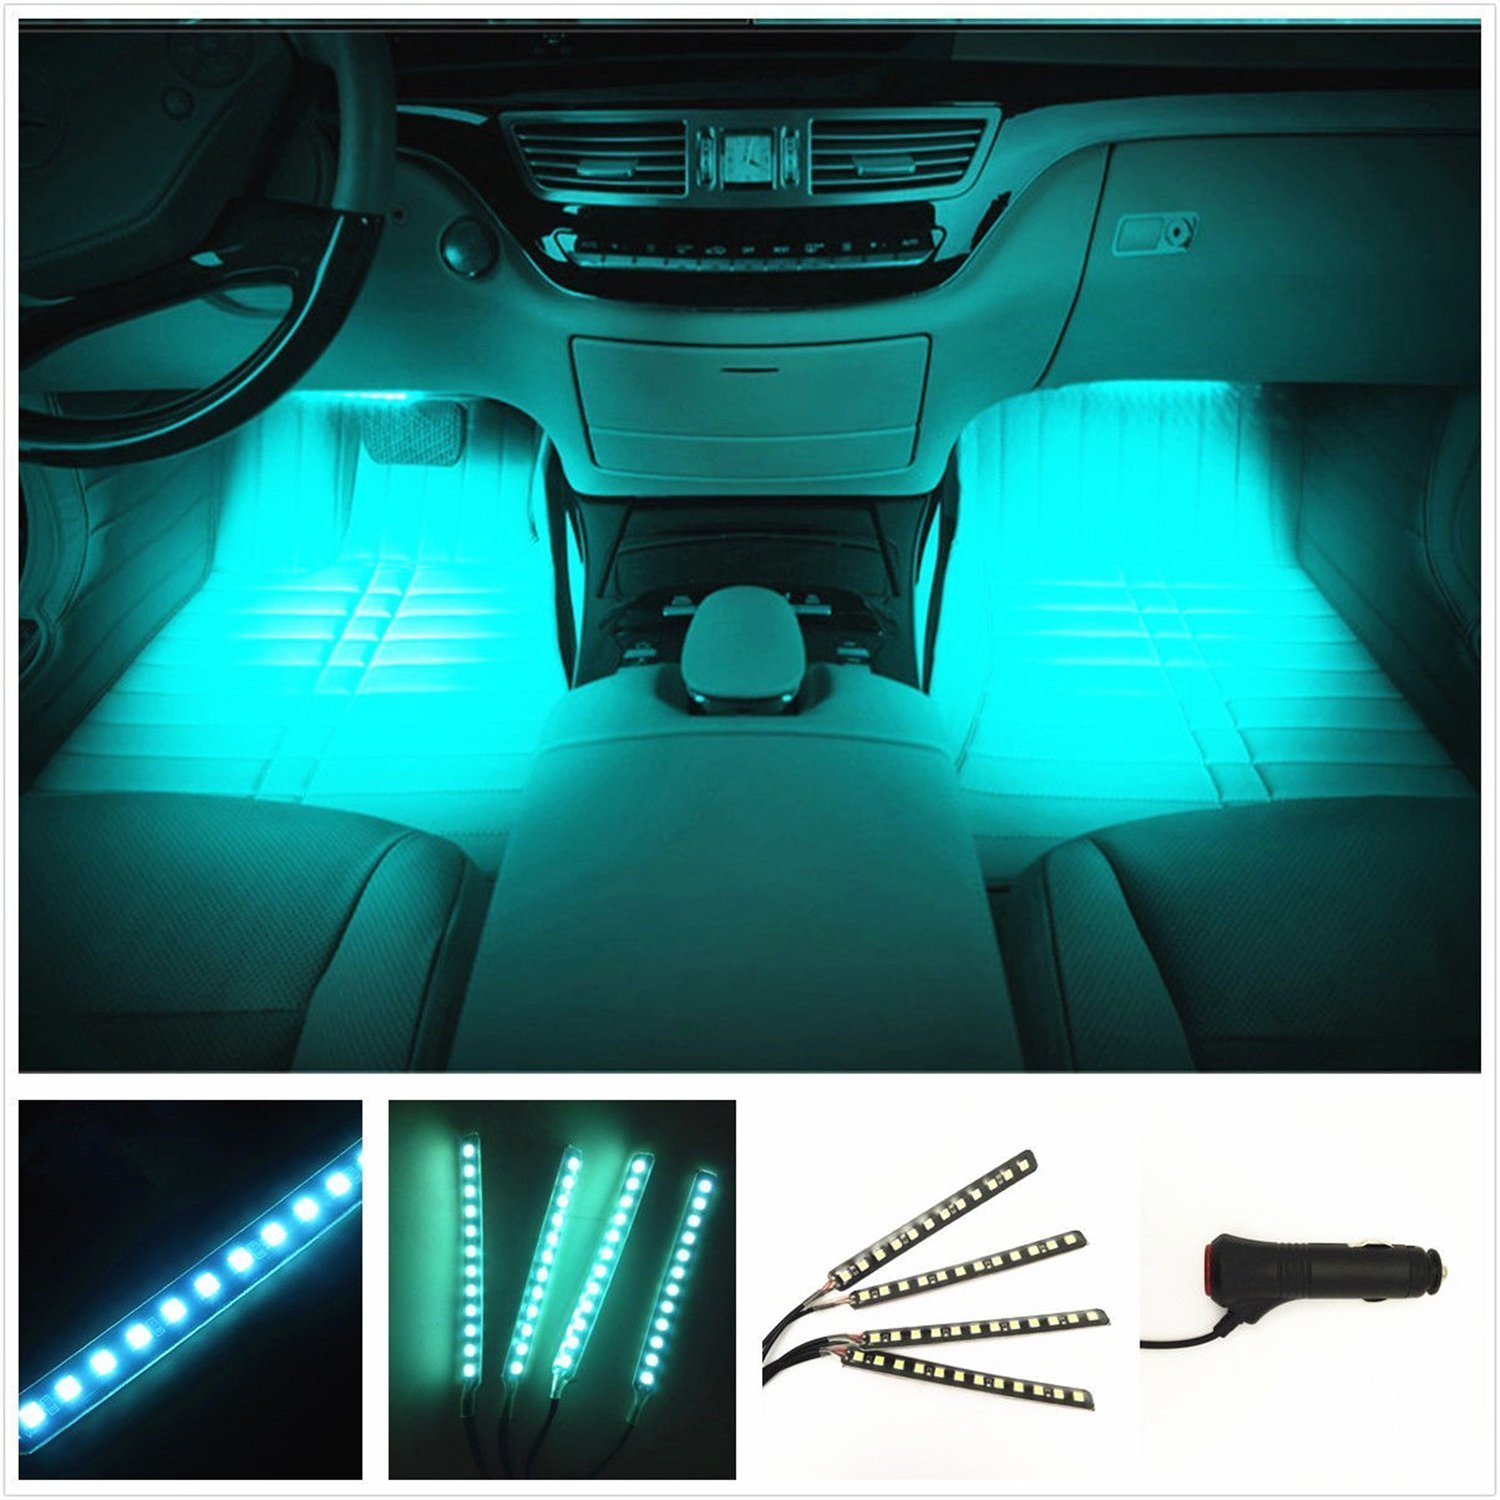 LED Neon Underglow Light MIHAZ 4Pcs High Intensity Atmosphere Lights for Car RGB Running Colors Musical Sync Under Car Auto Neon Tube Light Strip Wireless Remote Control Sound Active 90-120cm